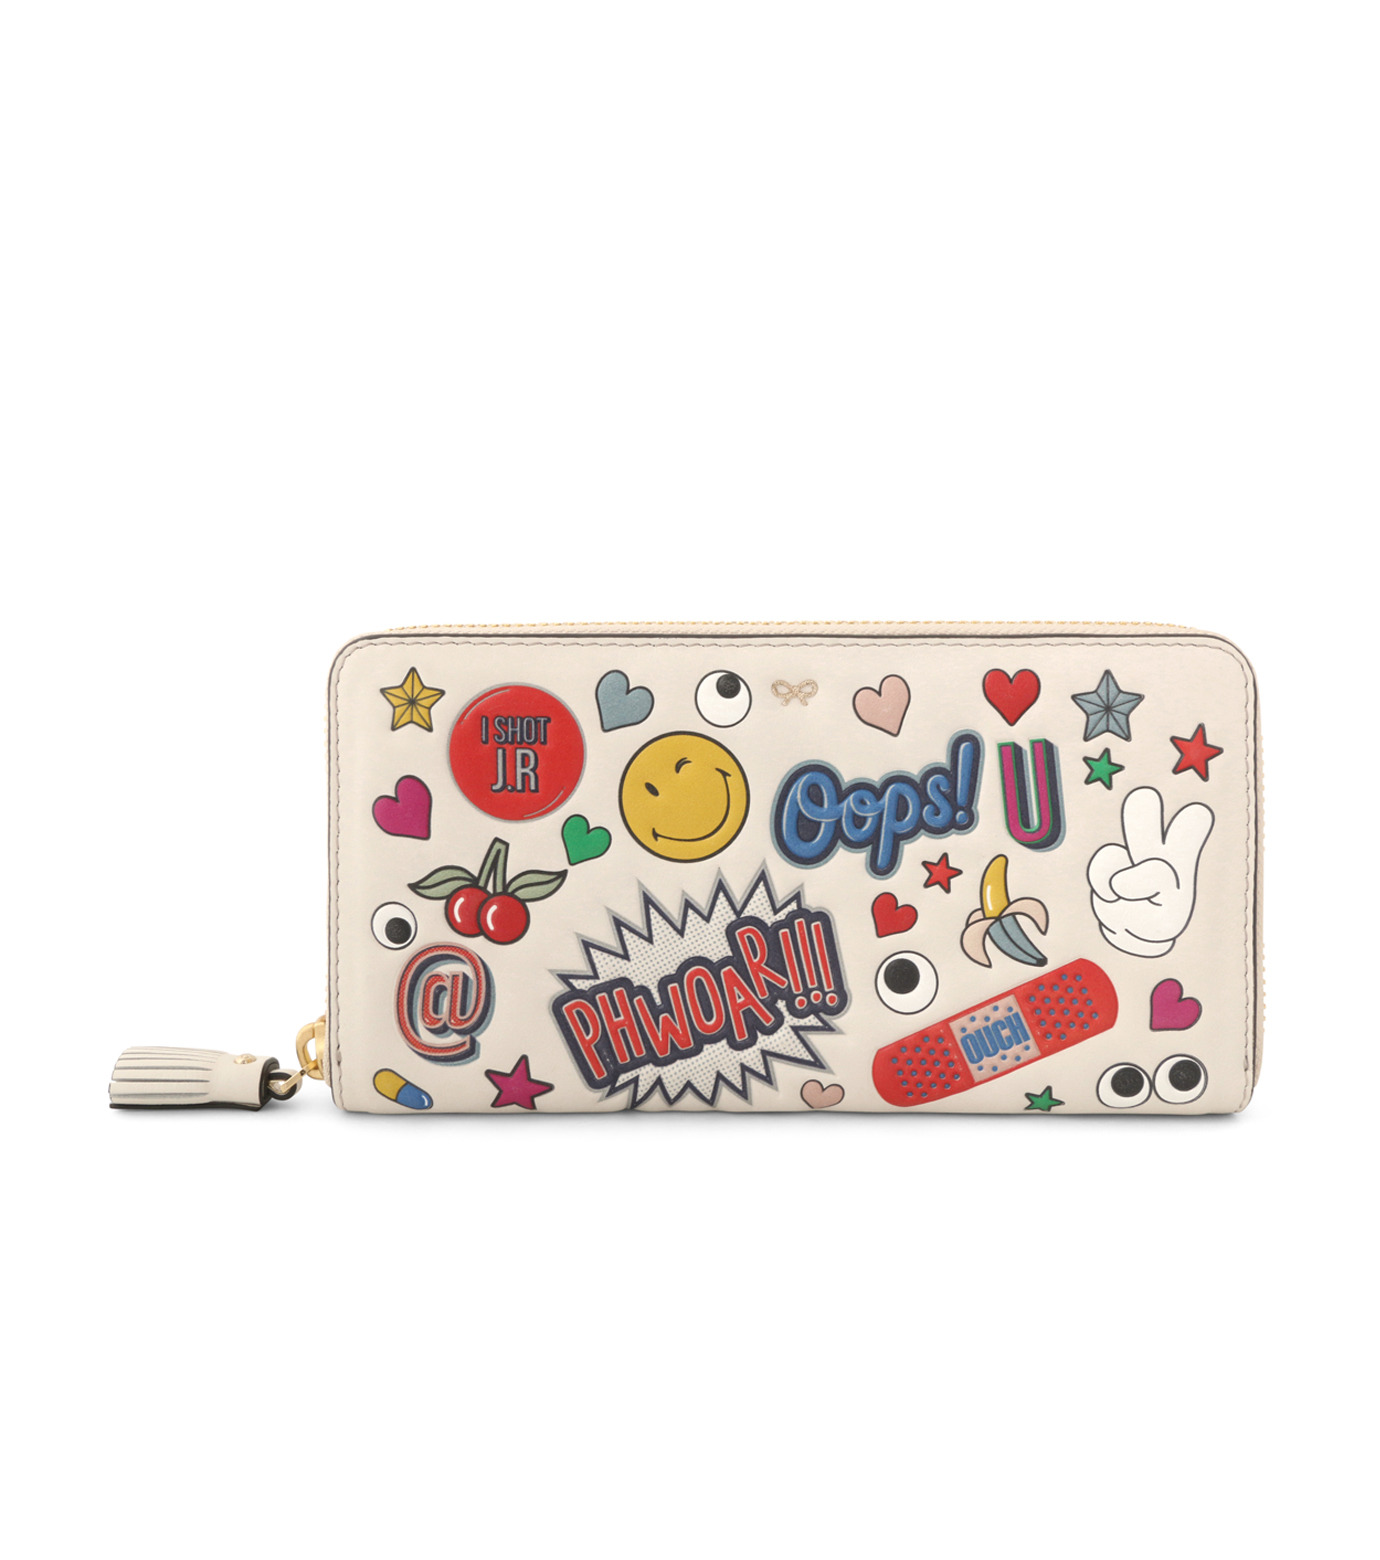 Anya Hindmarch(アニヤハインドマーチ)のLarge Zip Round Wallet All Over Wink-WHITE-924306-5 拡大詳細画像1